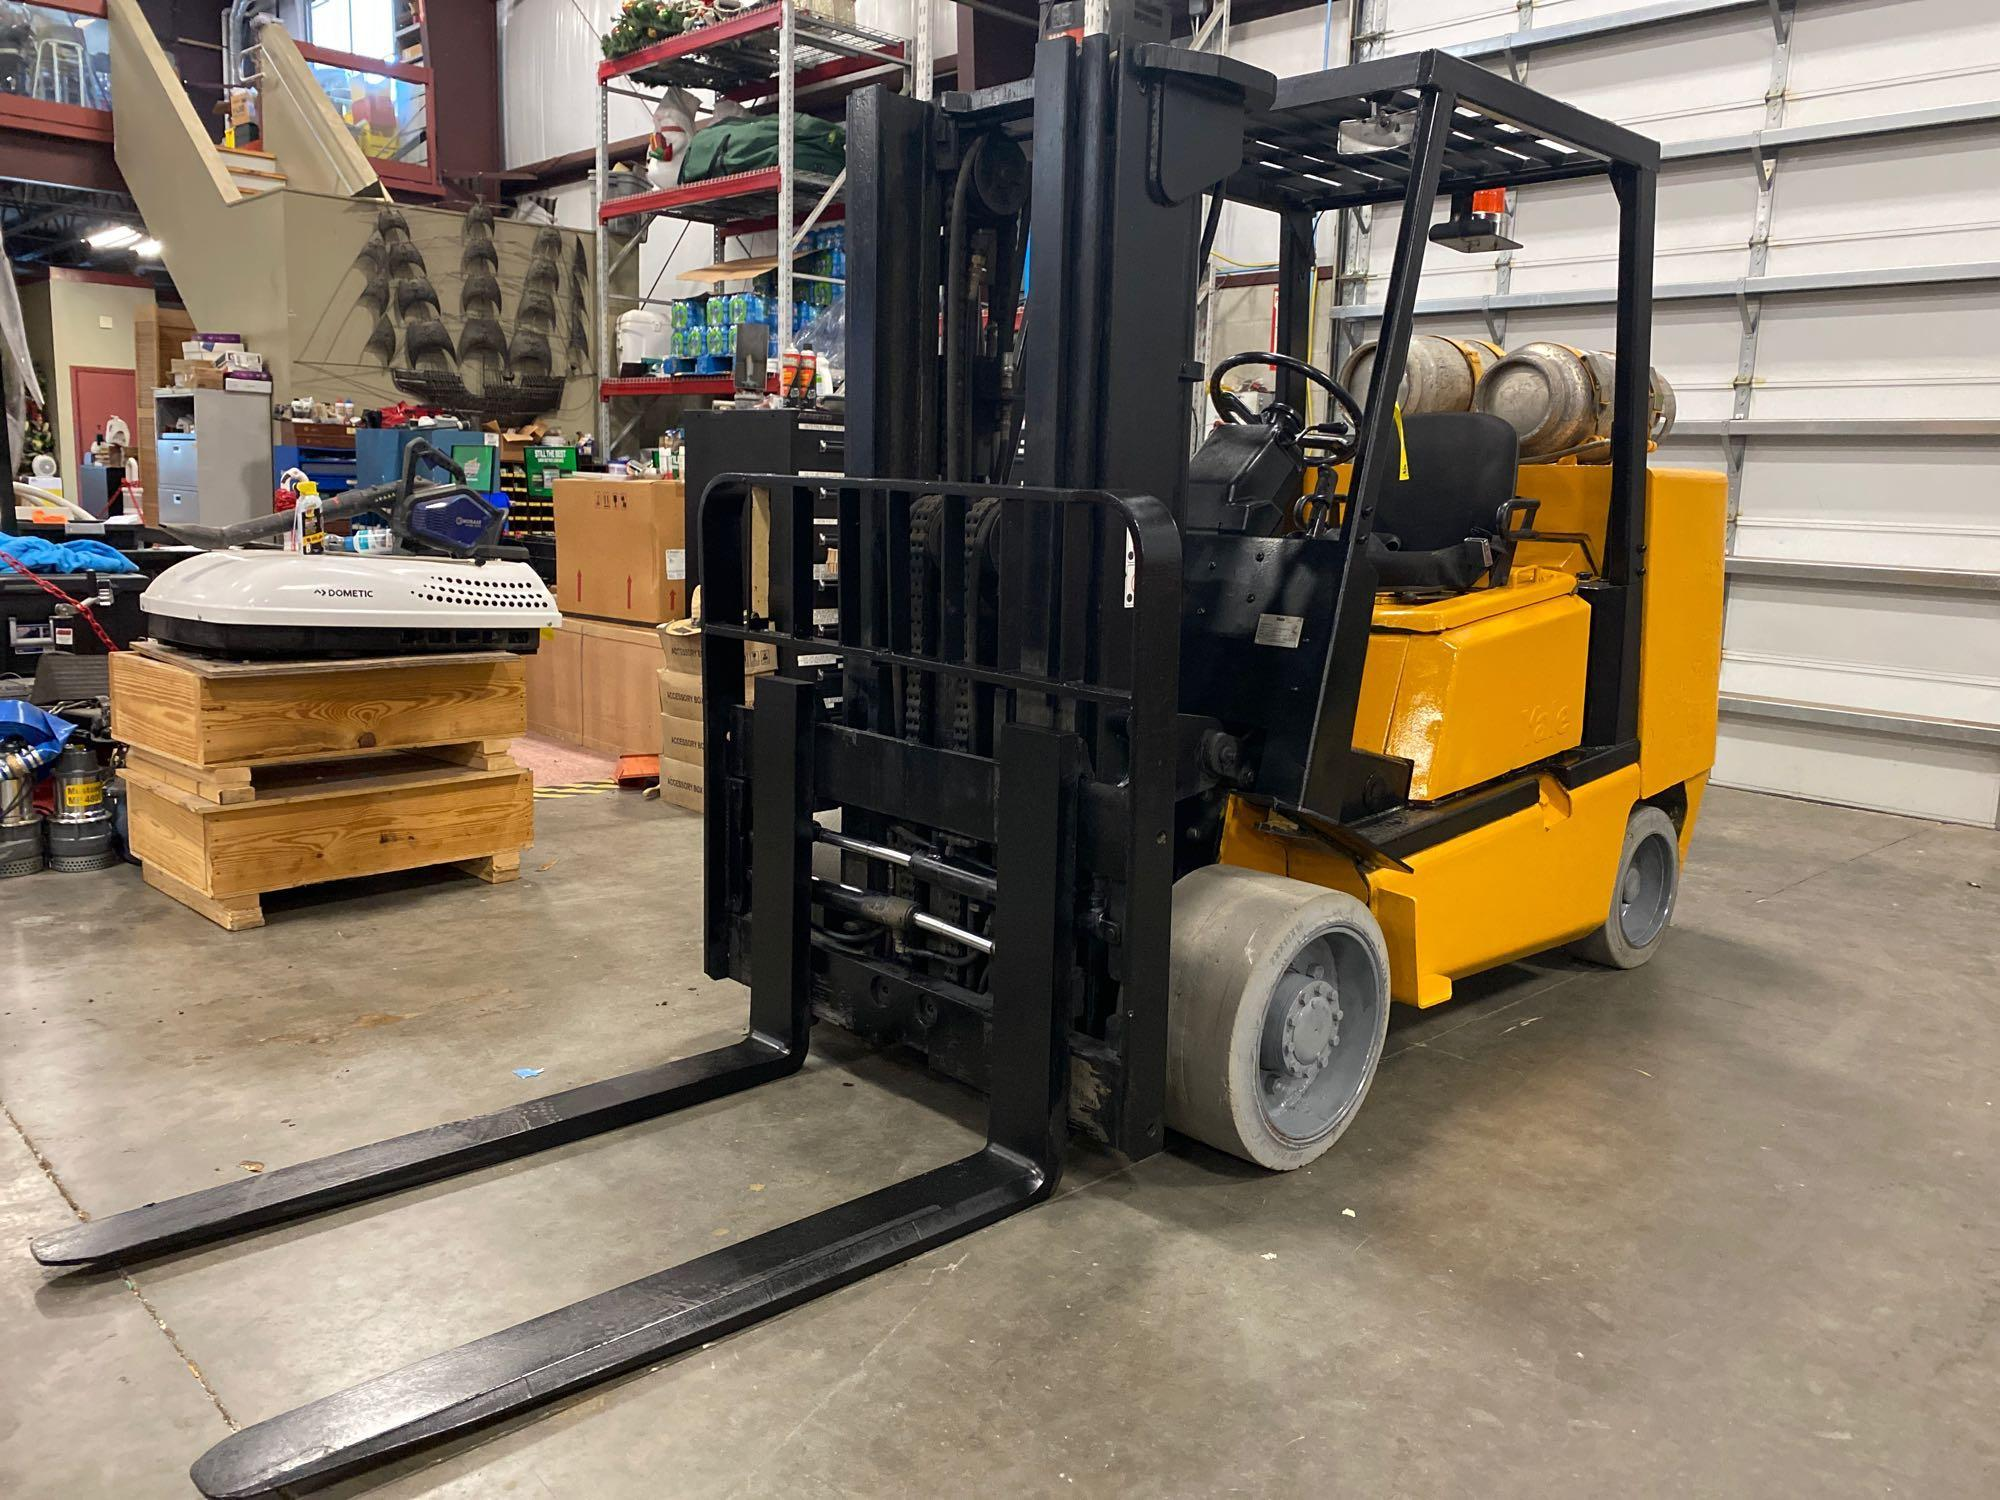 YALE LP FORKLIFT MODEL CLC120, APPROX. 12,000 LB CAPACITY, TILT, SIDE SHIFT, RUNS AND OPERATES - Image 2 of 10